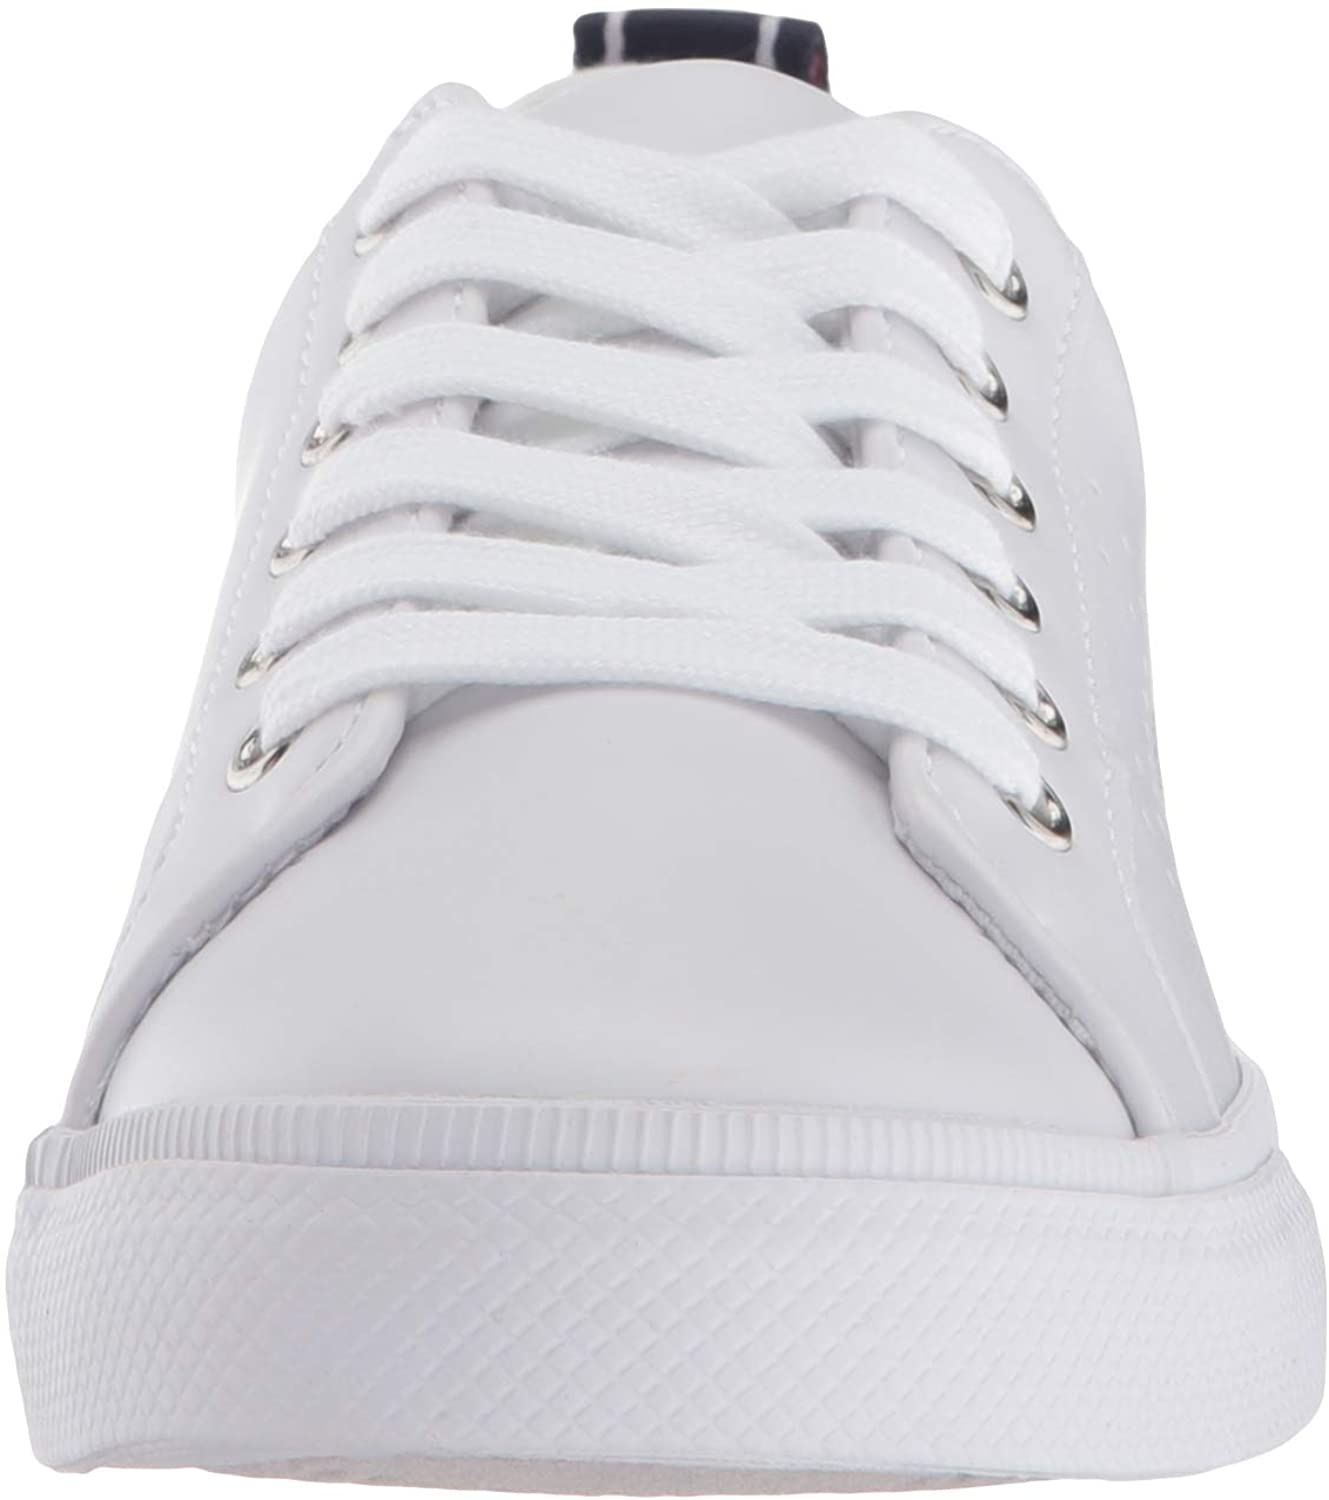 Tommy Hilfiger Lelita Zapatillas Para Mujer Blanco 7 5 Shoes Sneakers Tommy Hilfiger Not Wearing Shoes